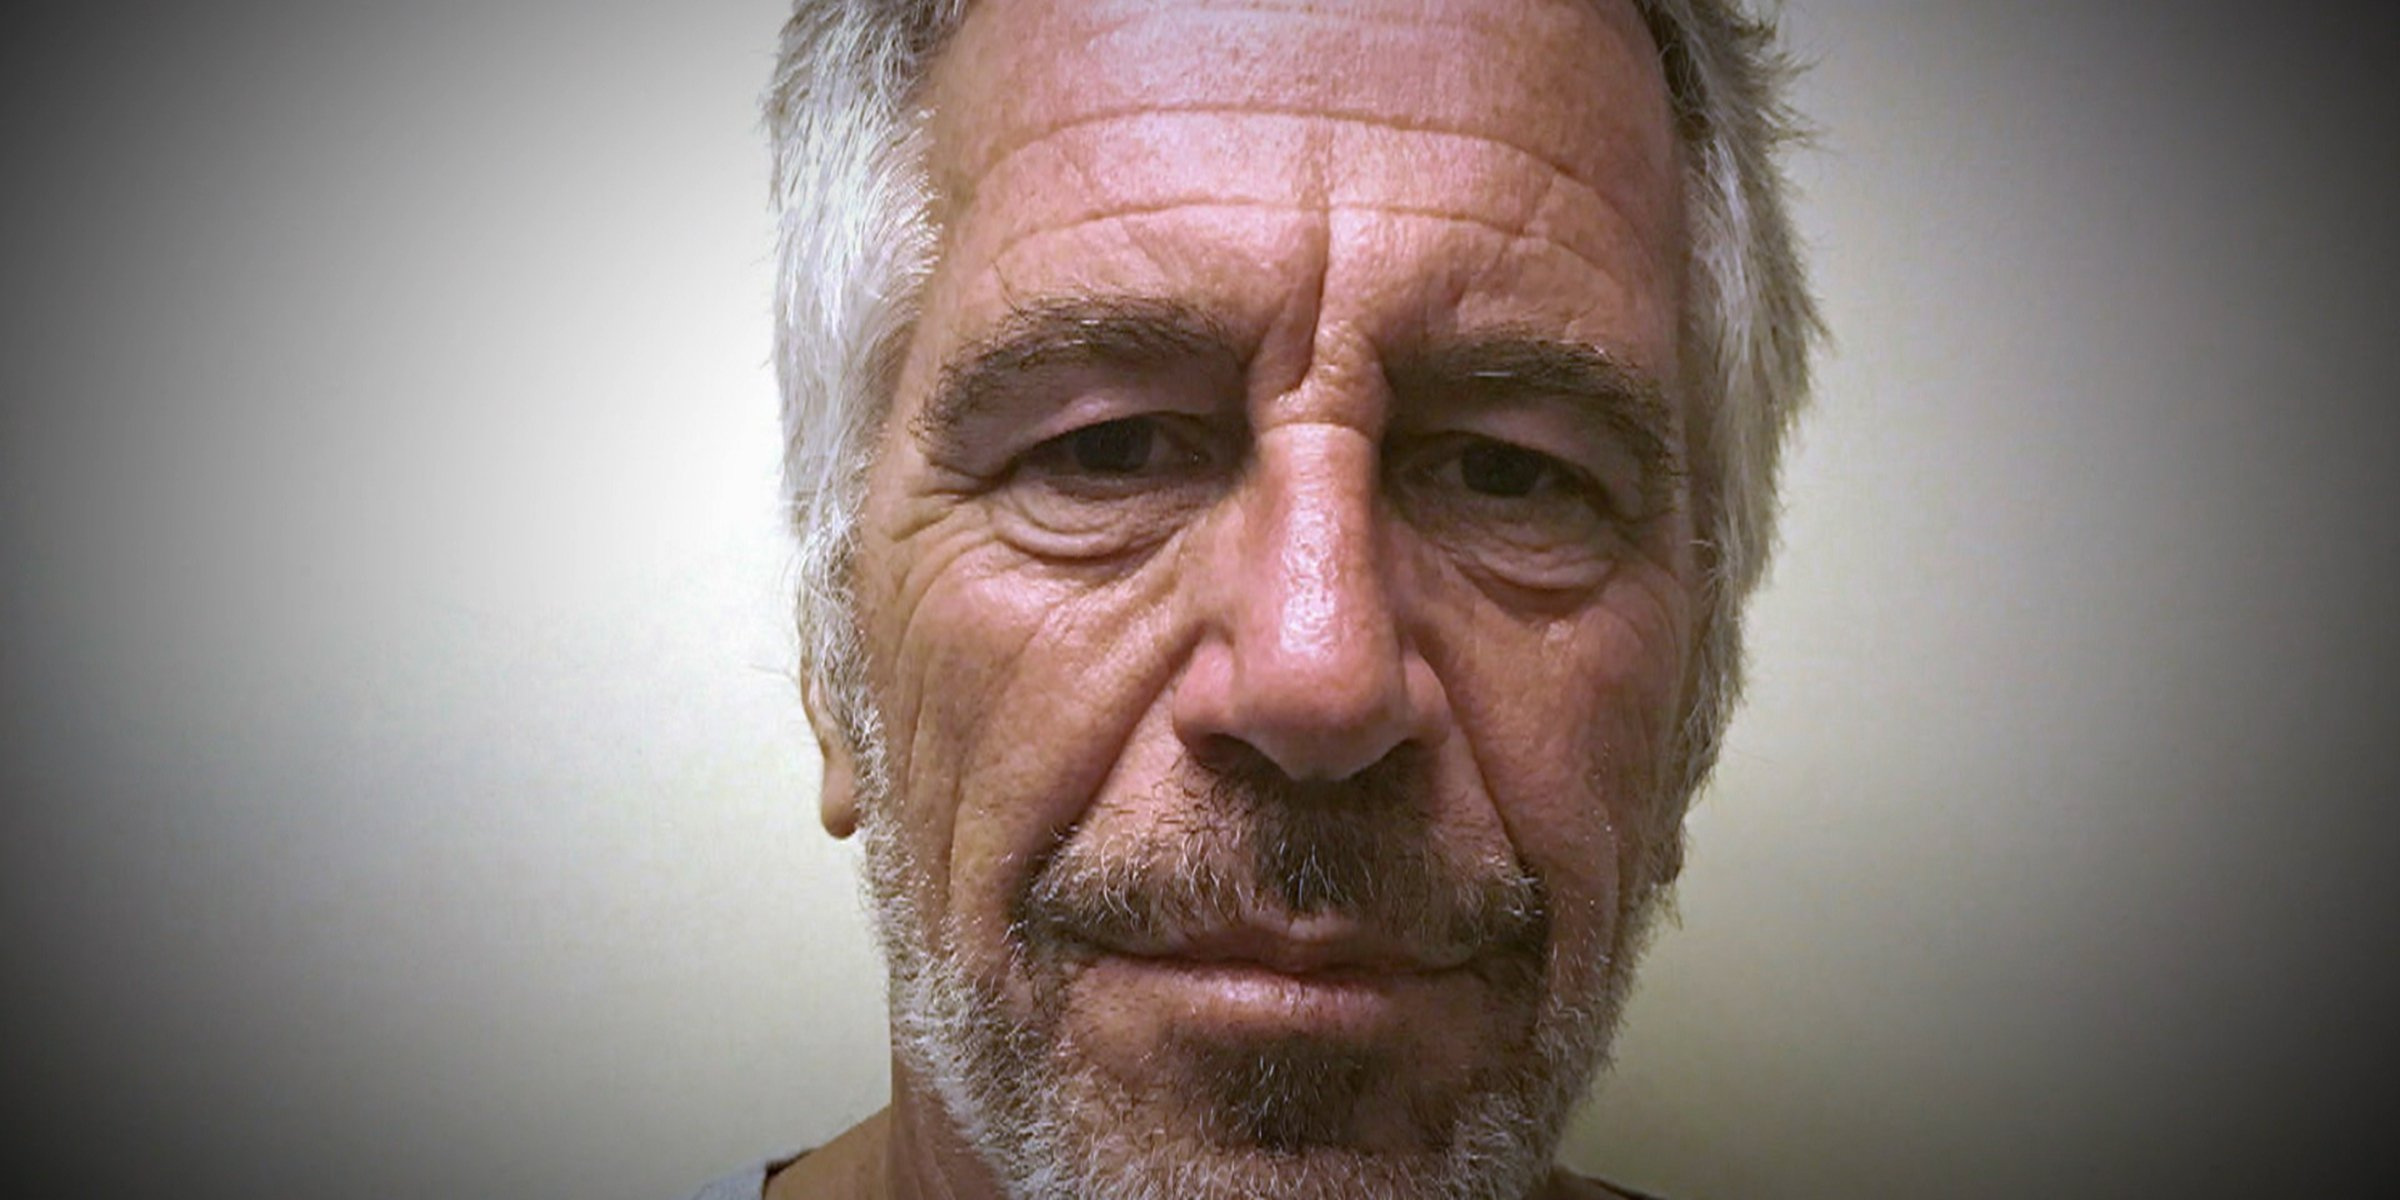 Jeffrey Epstein was not being monitored in jail as directed before his death